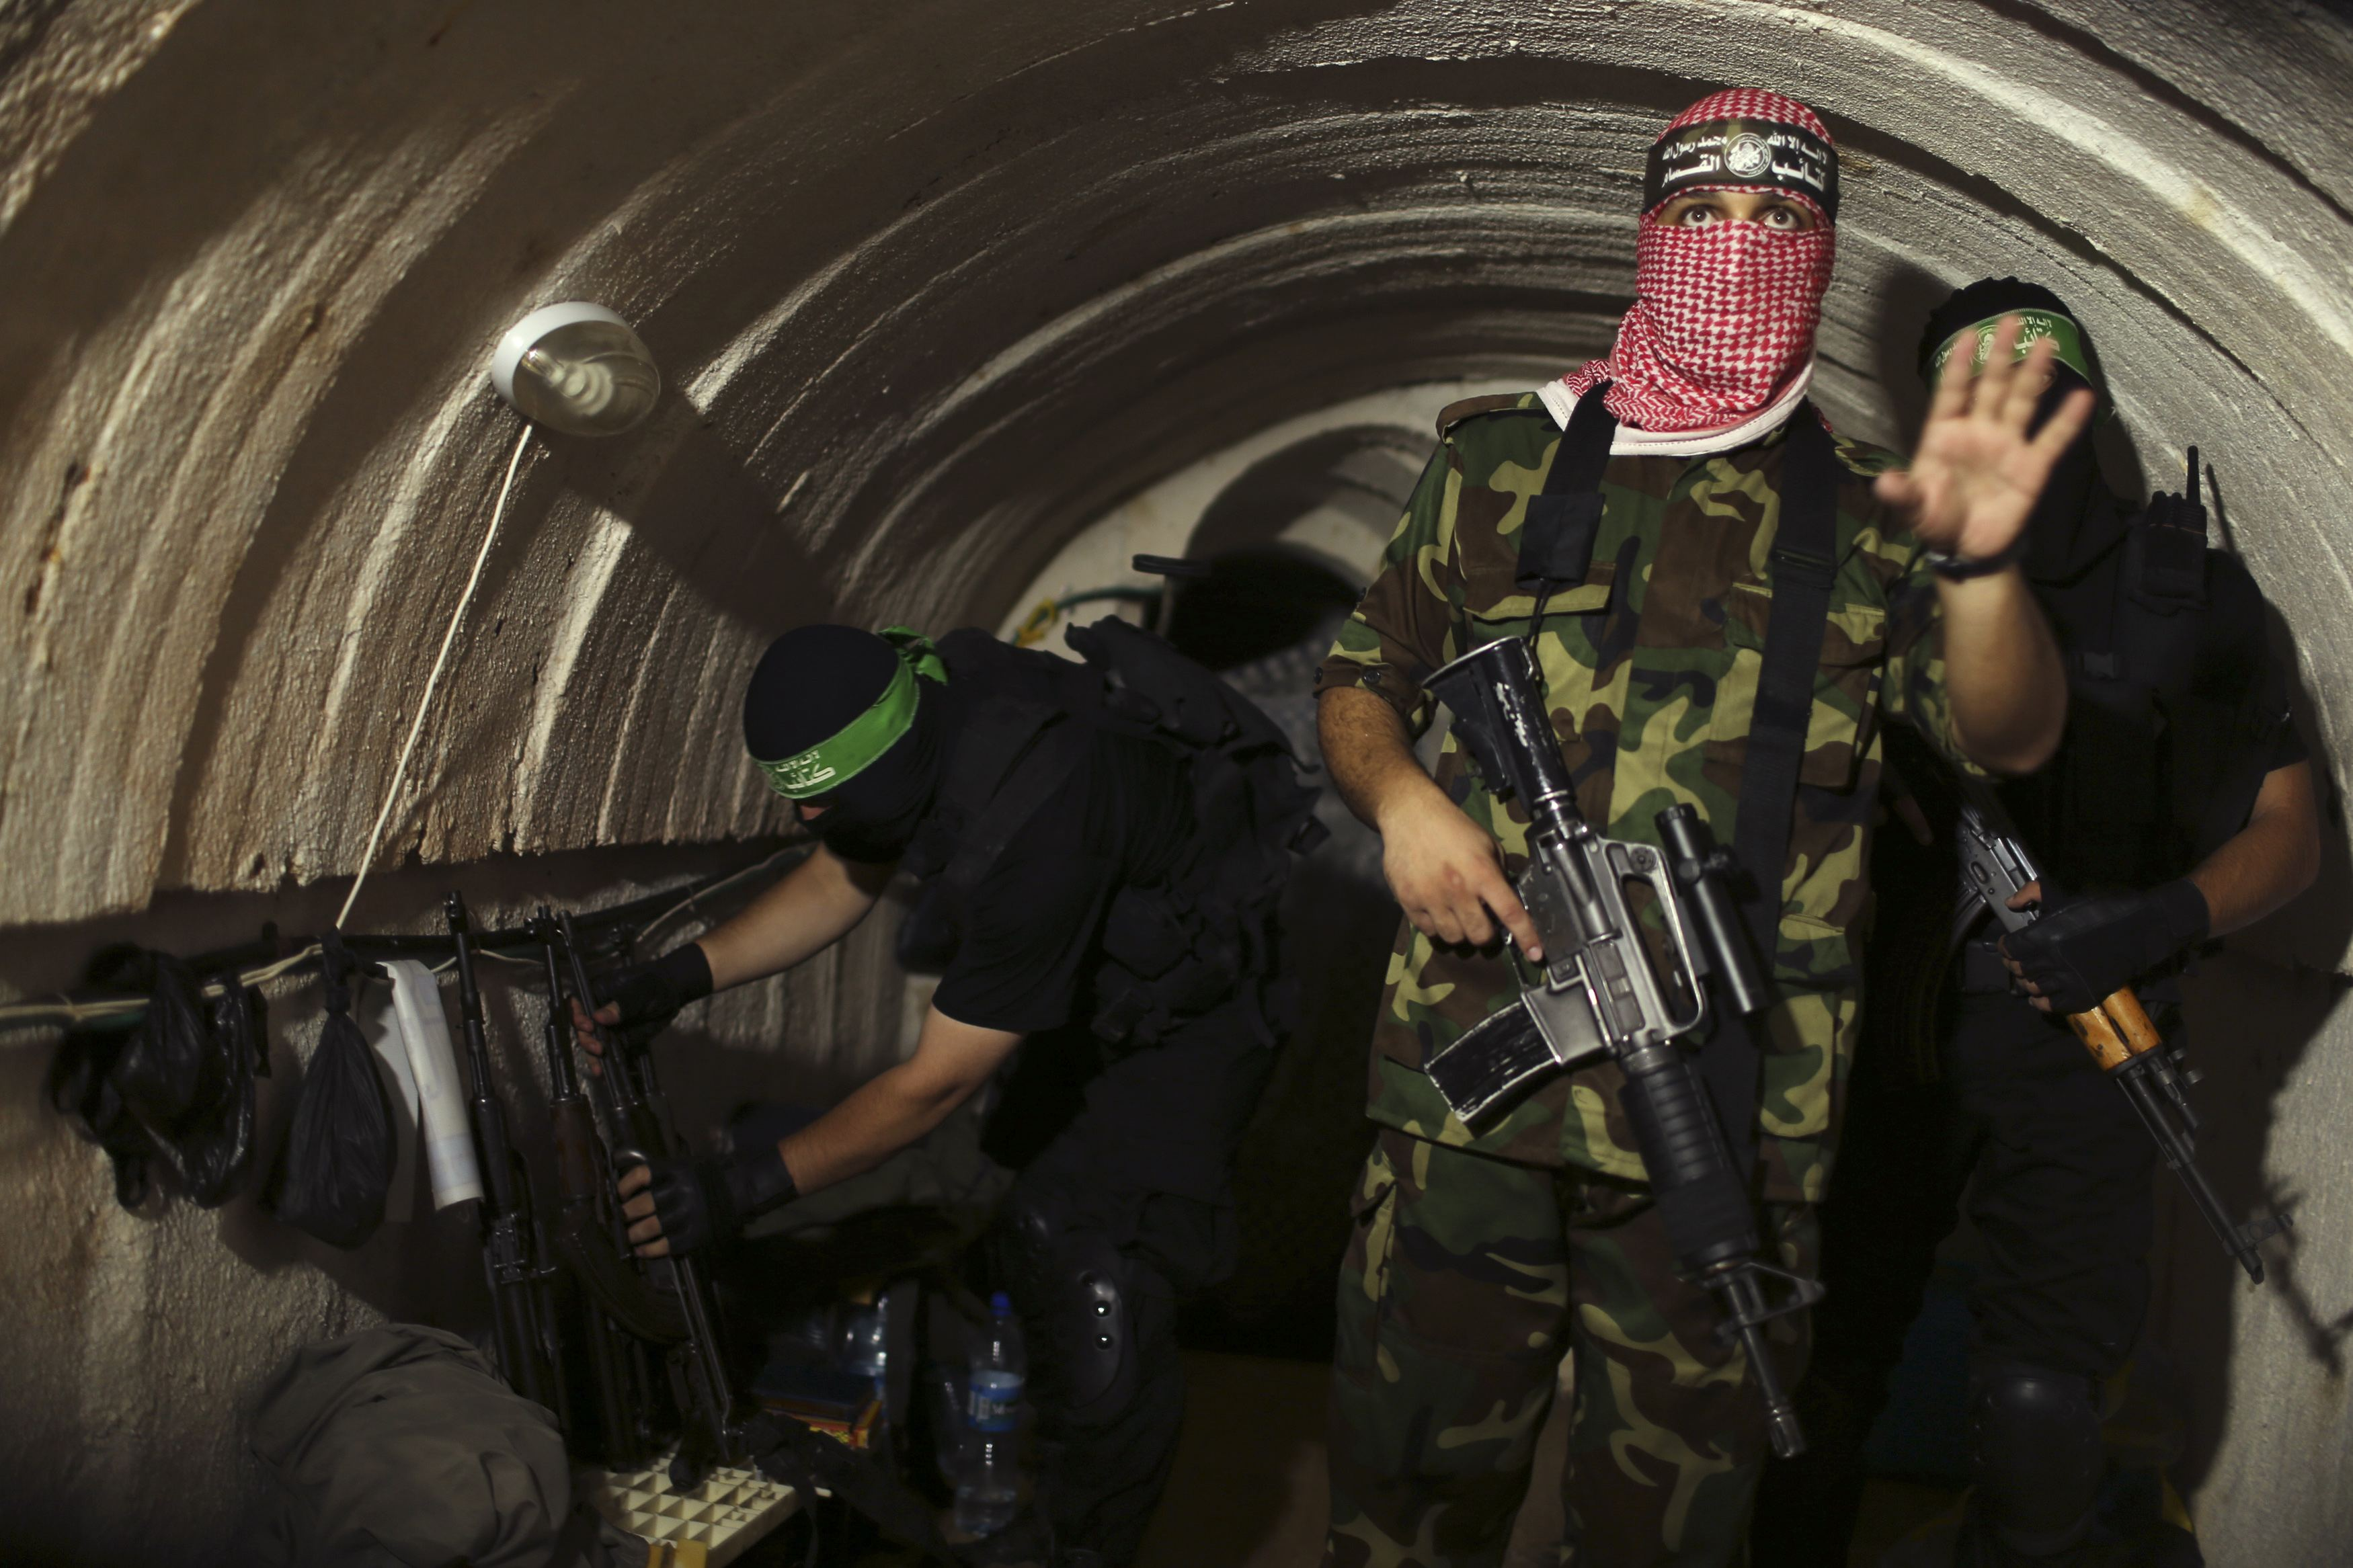 Are The Activities Of Hamas Morally Defensible?